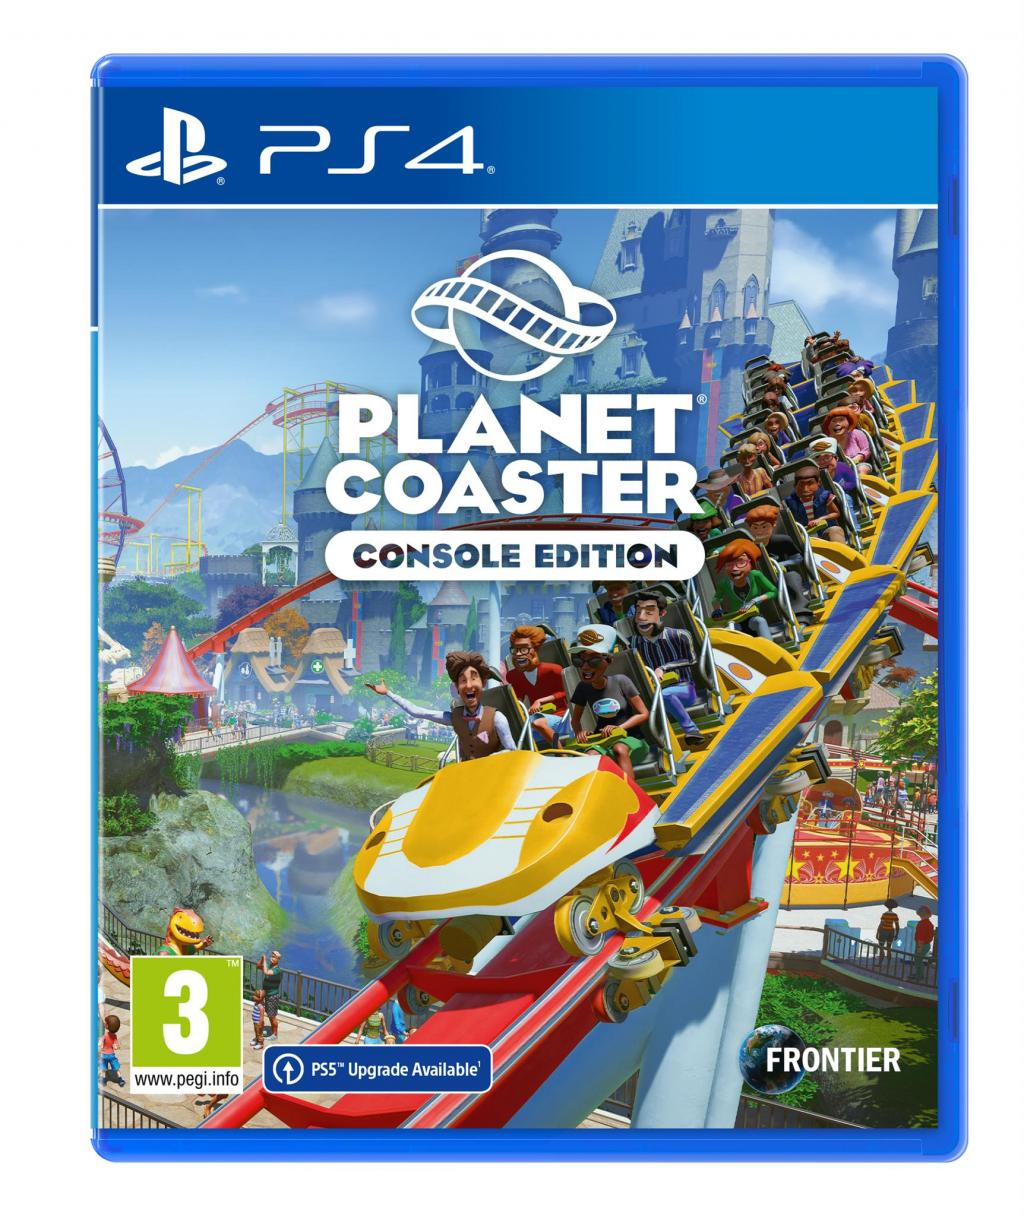 Planet Coaster - Console Edition - Next-gen Upgrade available_1